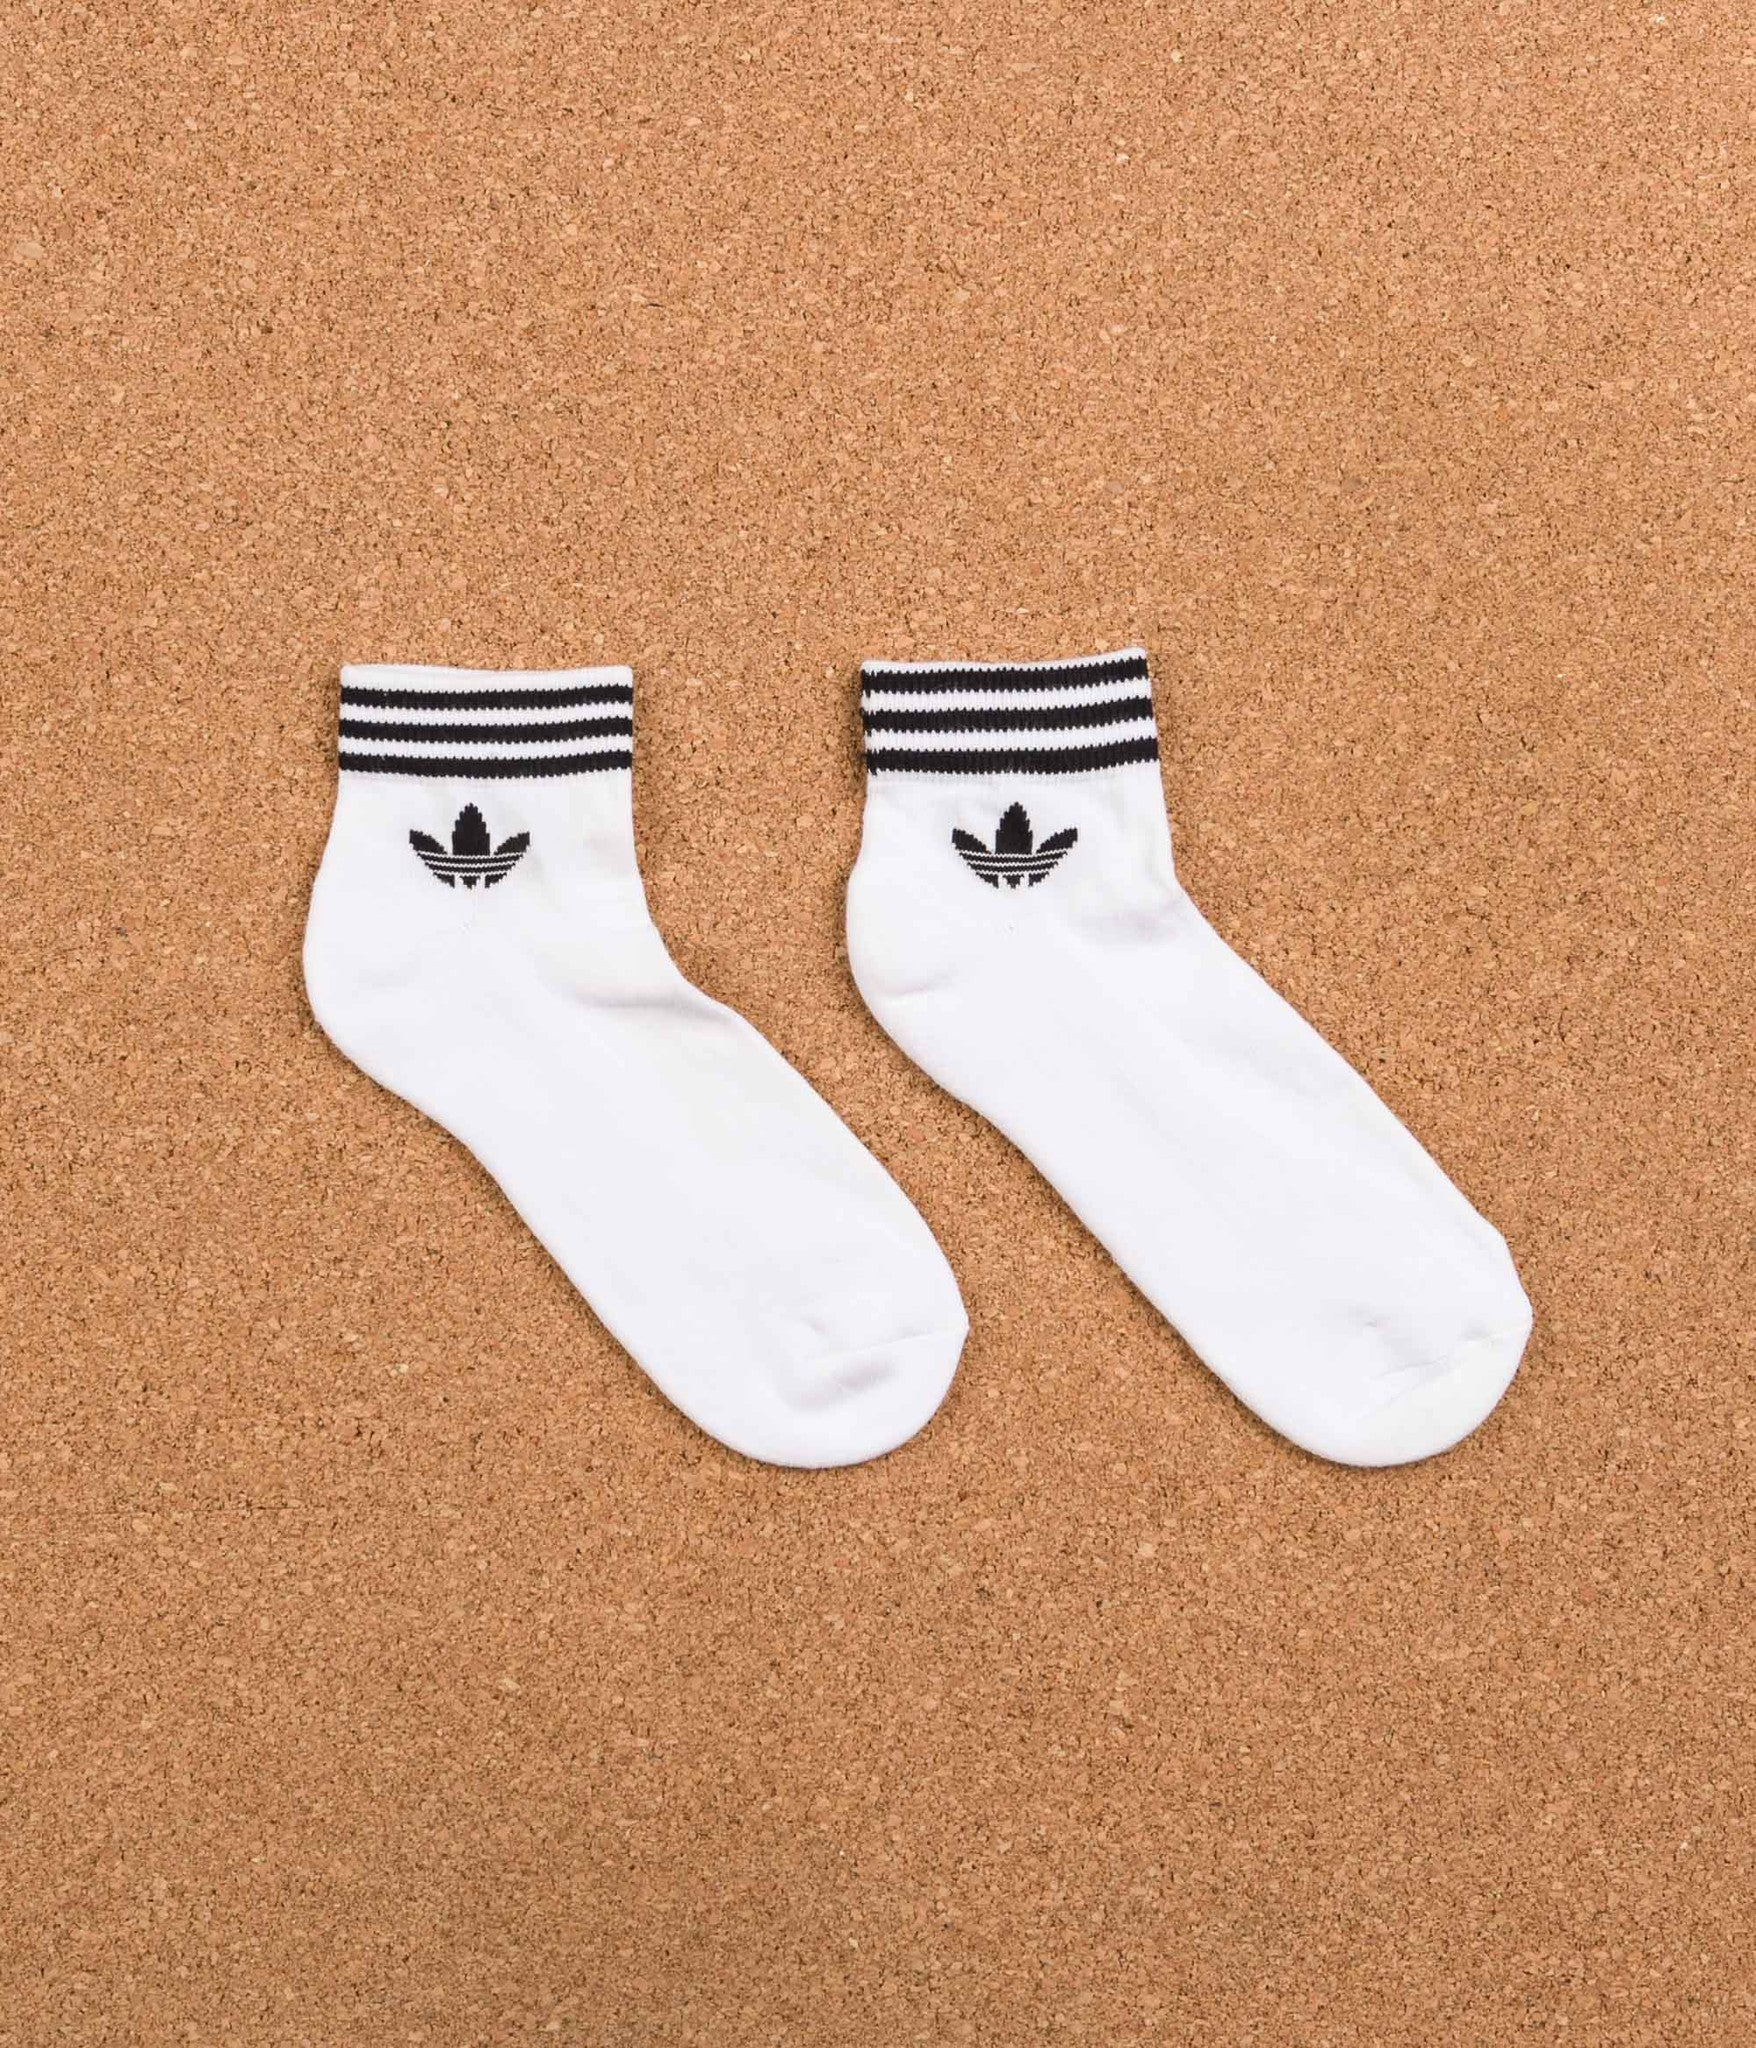 Adidas Trefoil Ankle Socks - White